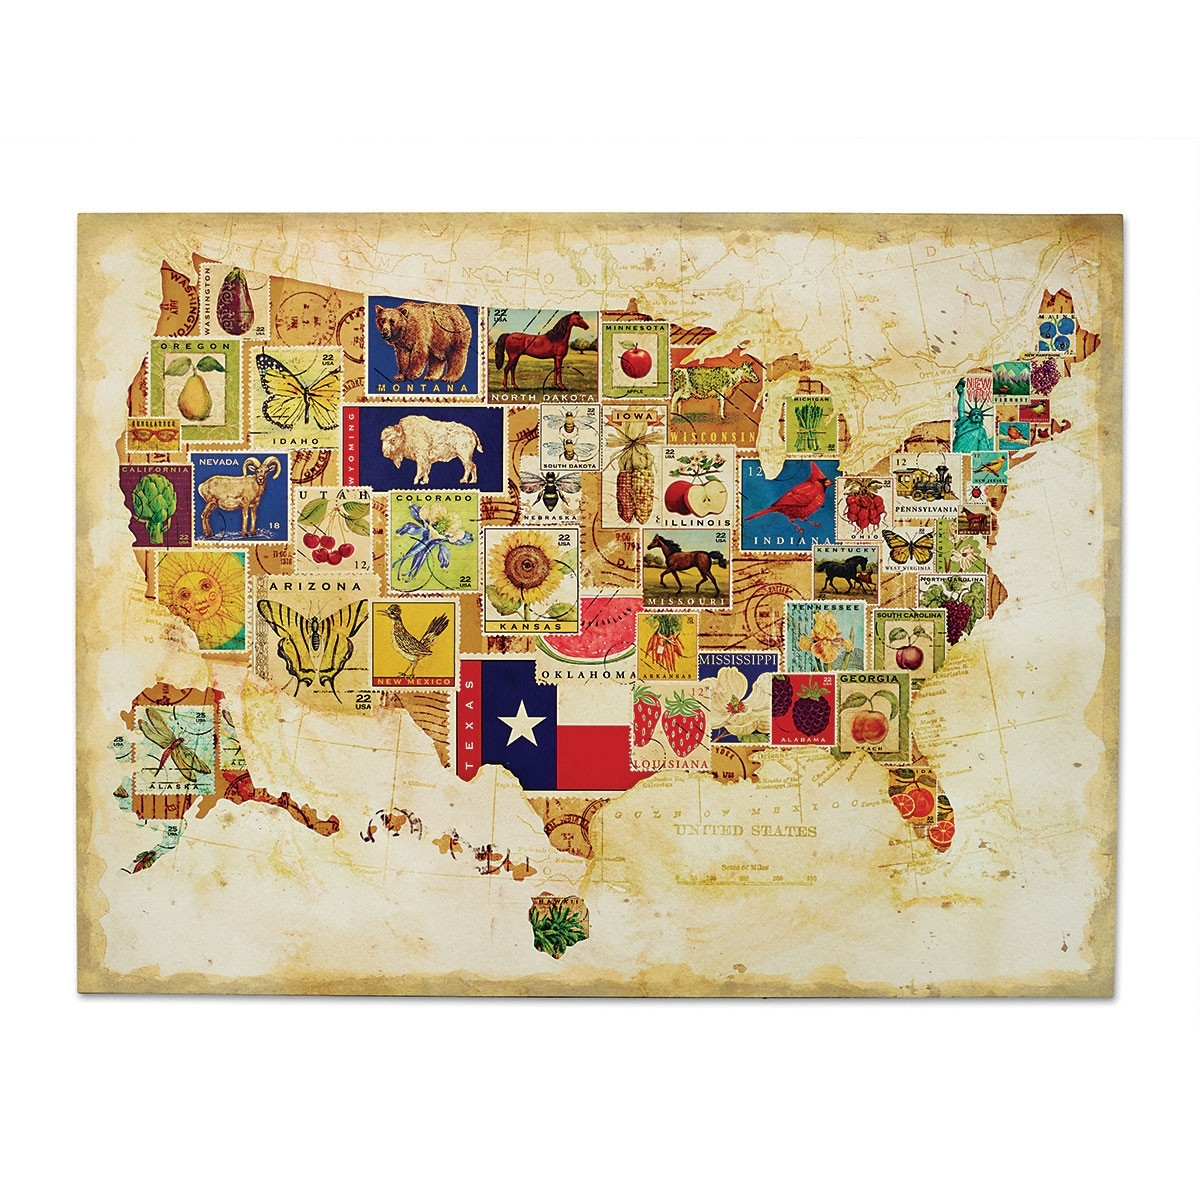 Us Map Wall Art My Blog, Us Map Wall Art - Swinki Morskie intended for United States Map Wall Art (Image 11 of 20)